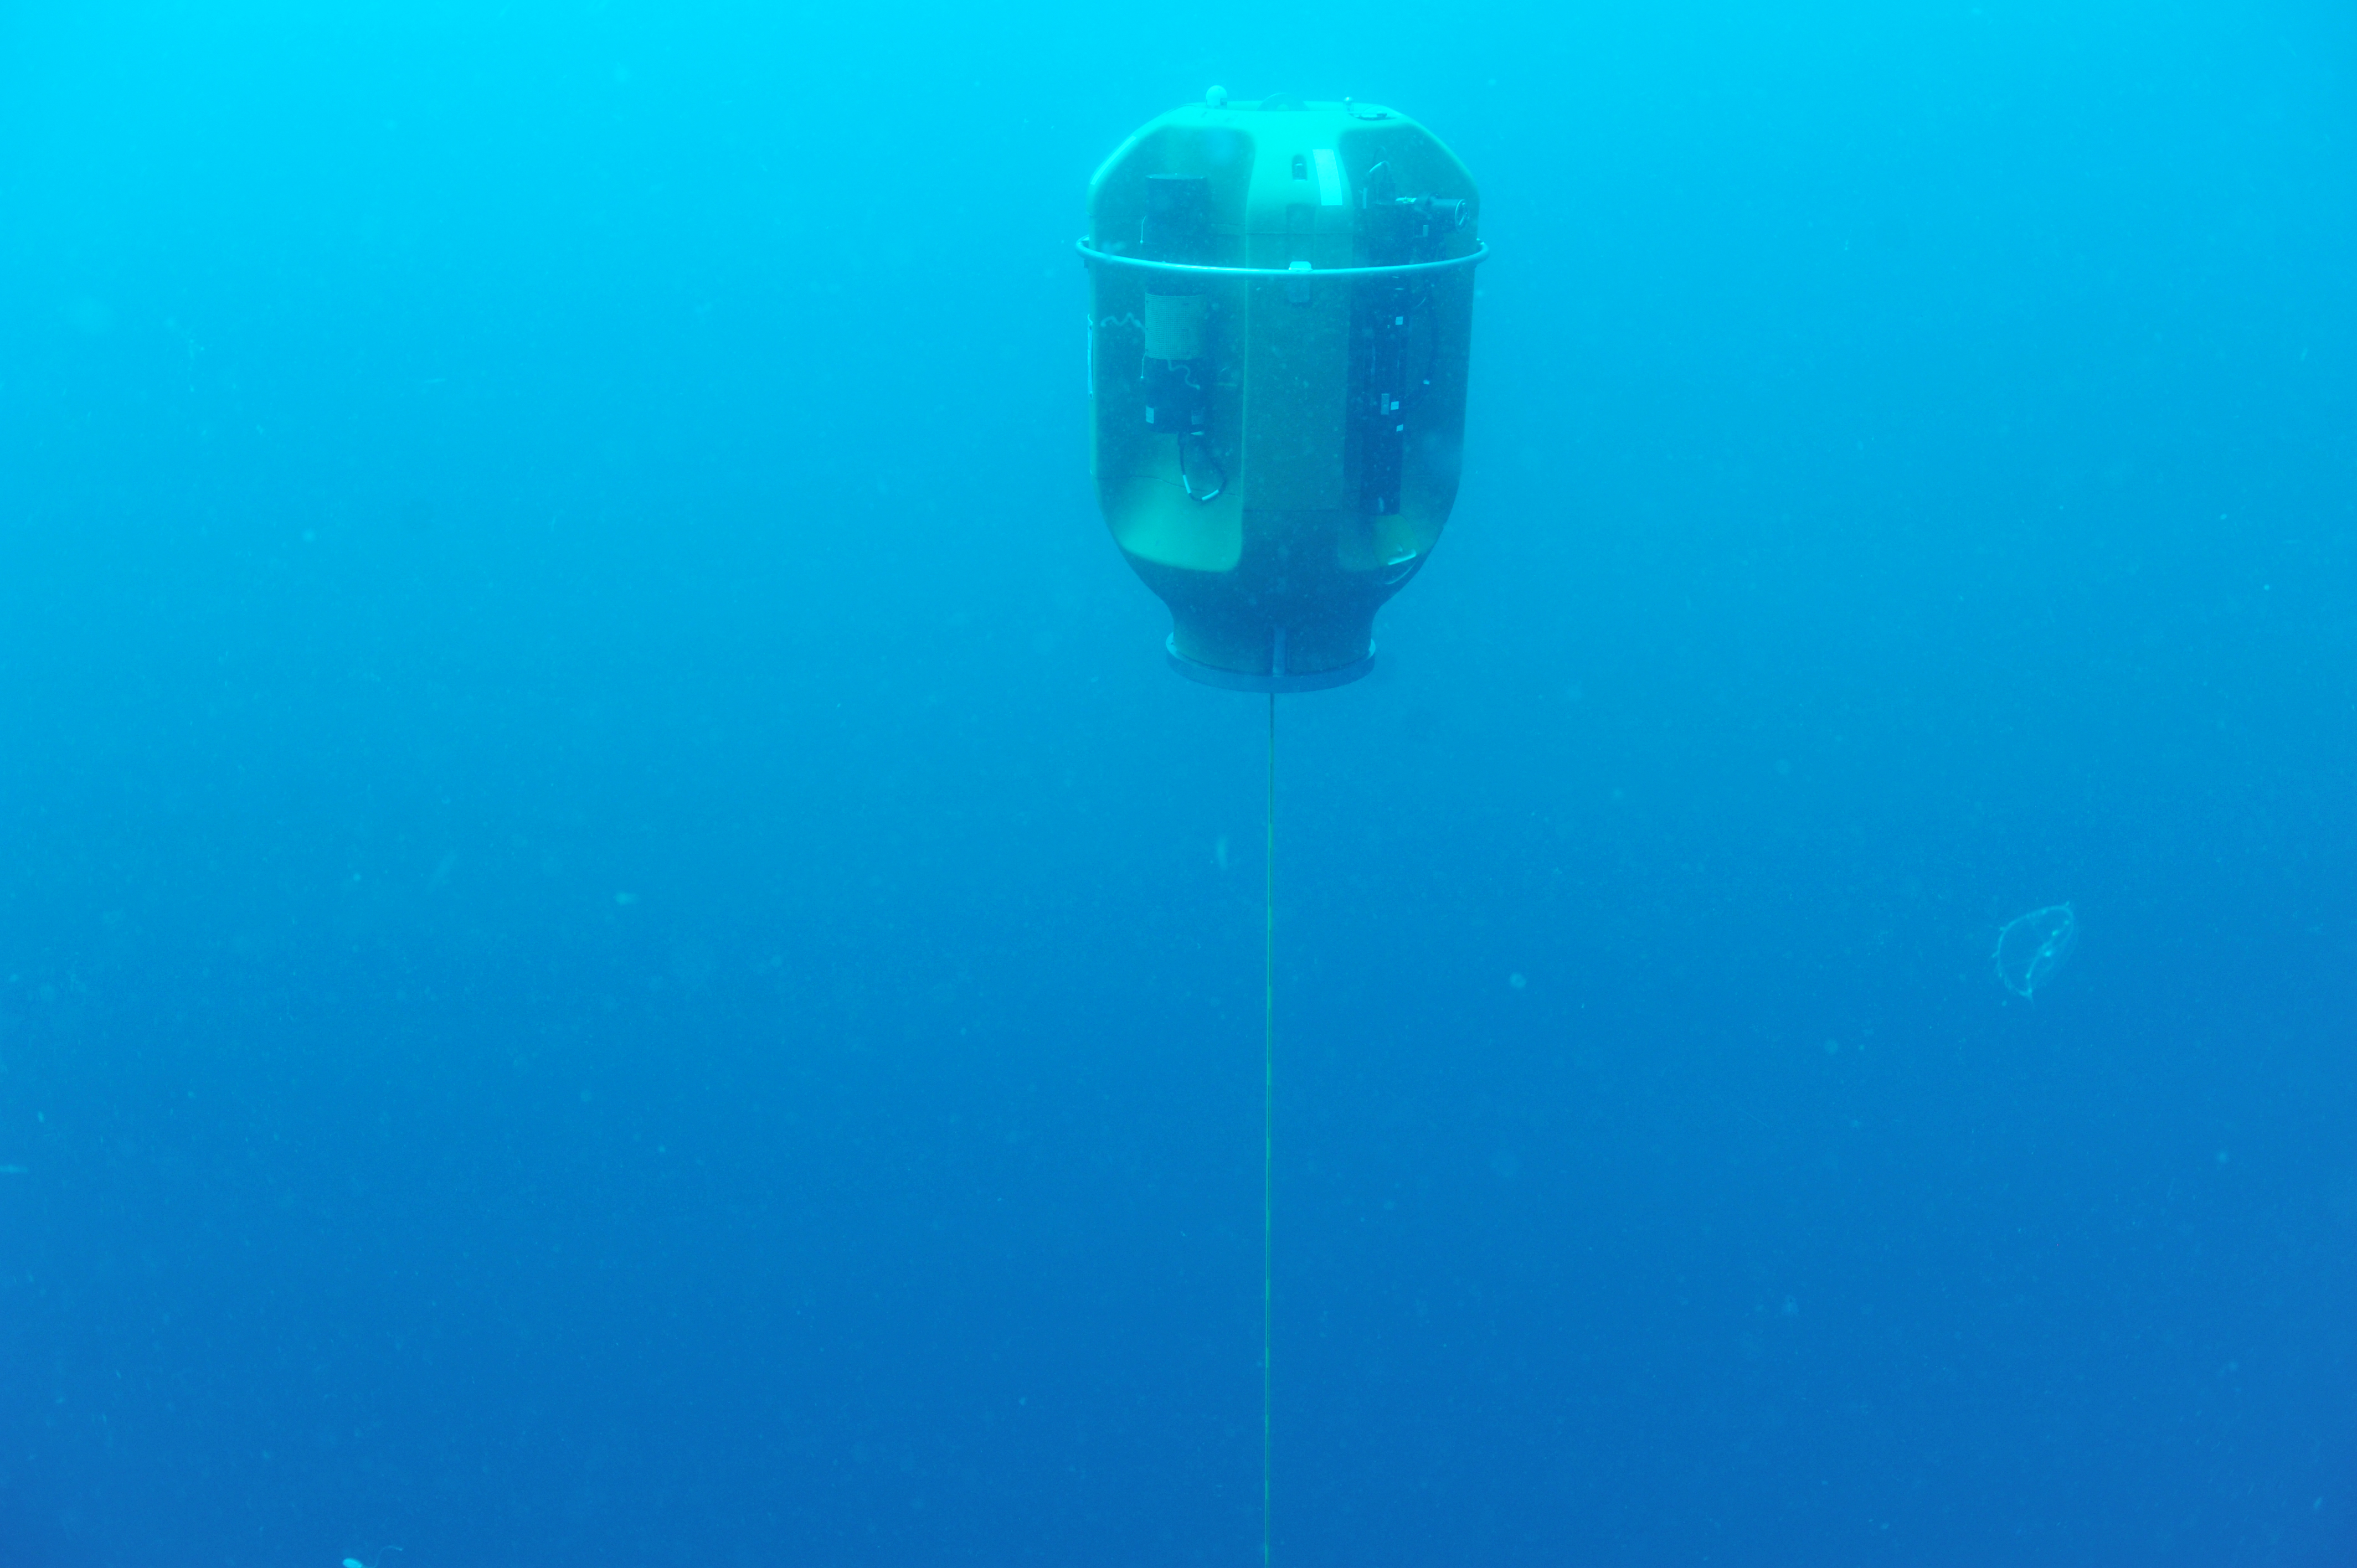 The Oregon Slope Base Shallow Profiler, engulfed in soft sunlight, rises to 30 m beneath the ocean's surface. It is measuring nutrients, dissolved oxygen, seawater acidity, temperature, chlorophyll, and carbon dioxide concentrations at high temporal and spatial resolution, controlled from ~70 miles onshore through the Internet at the University of Washington. Credit: NSF-OOI/UW/CSSF; V15.